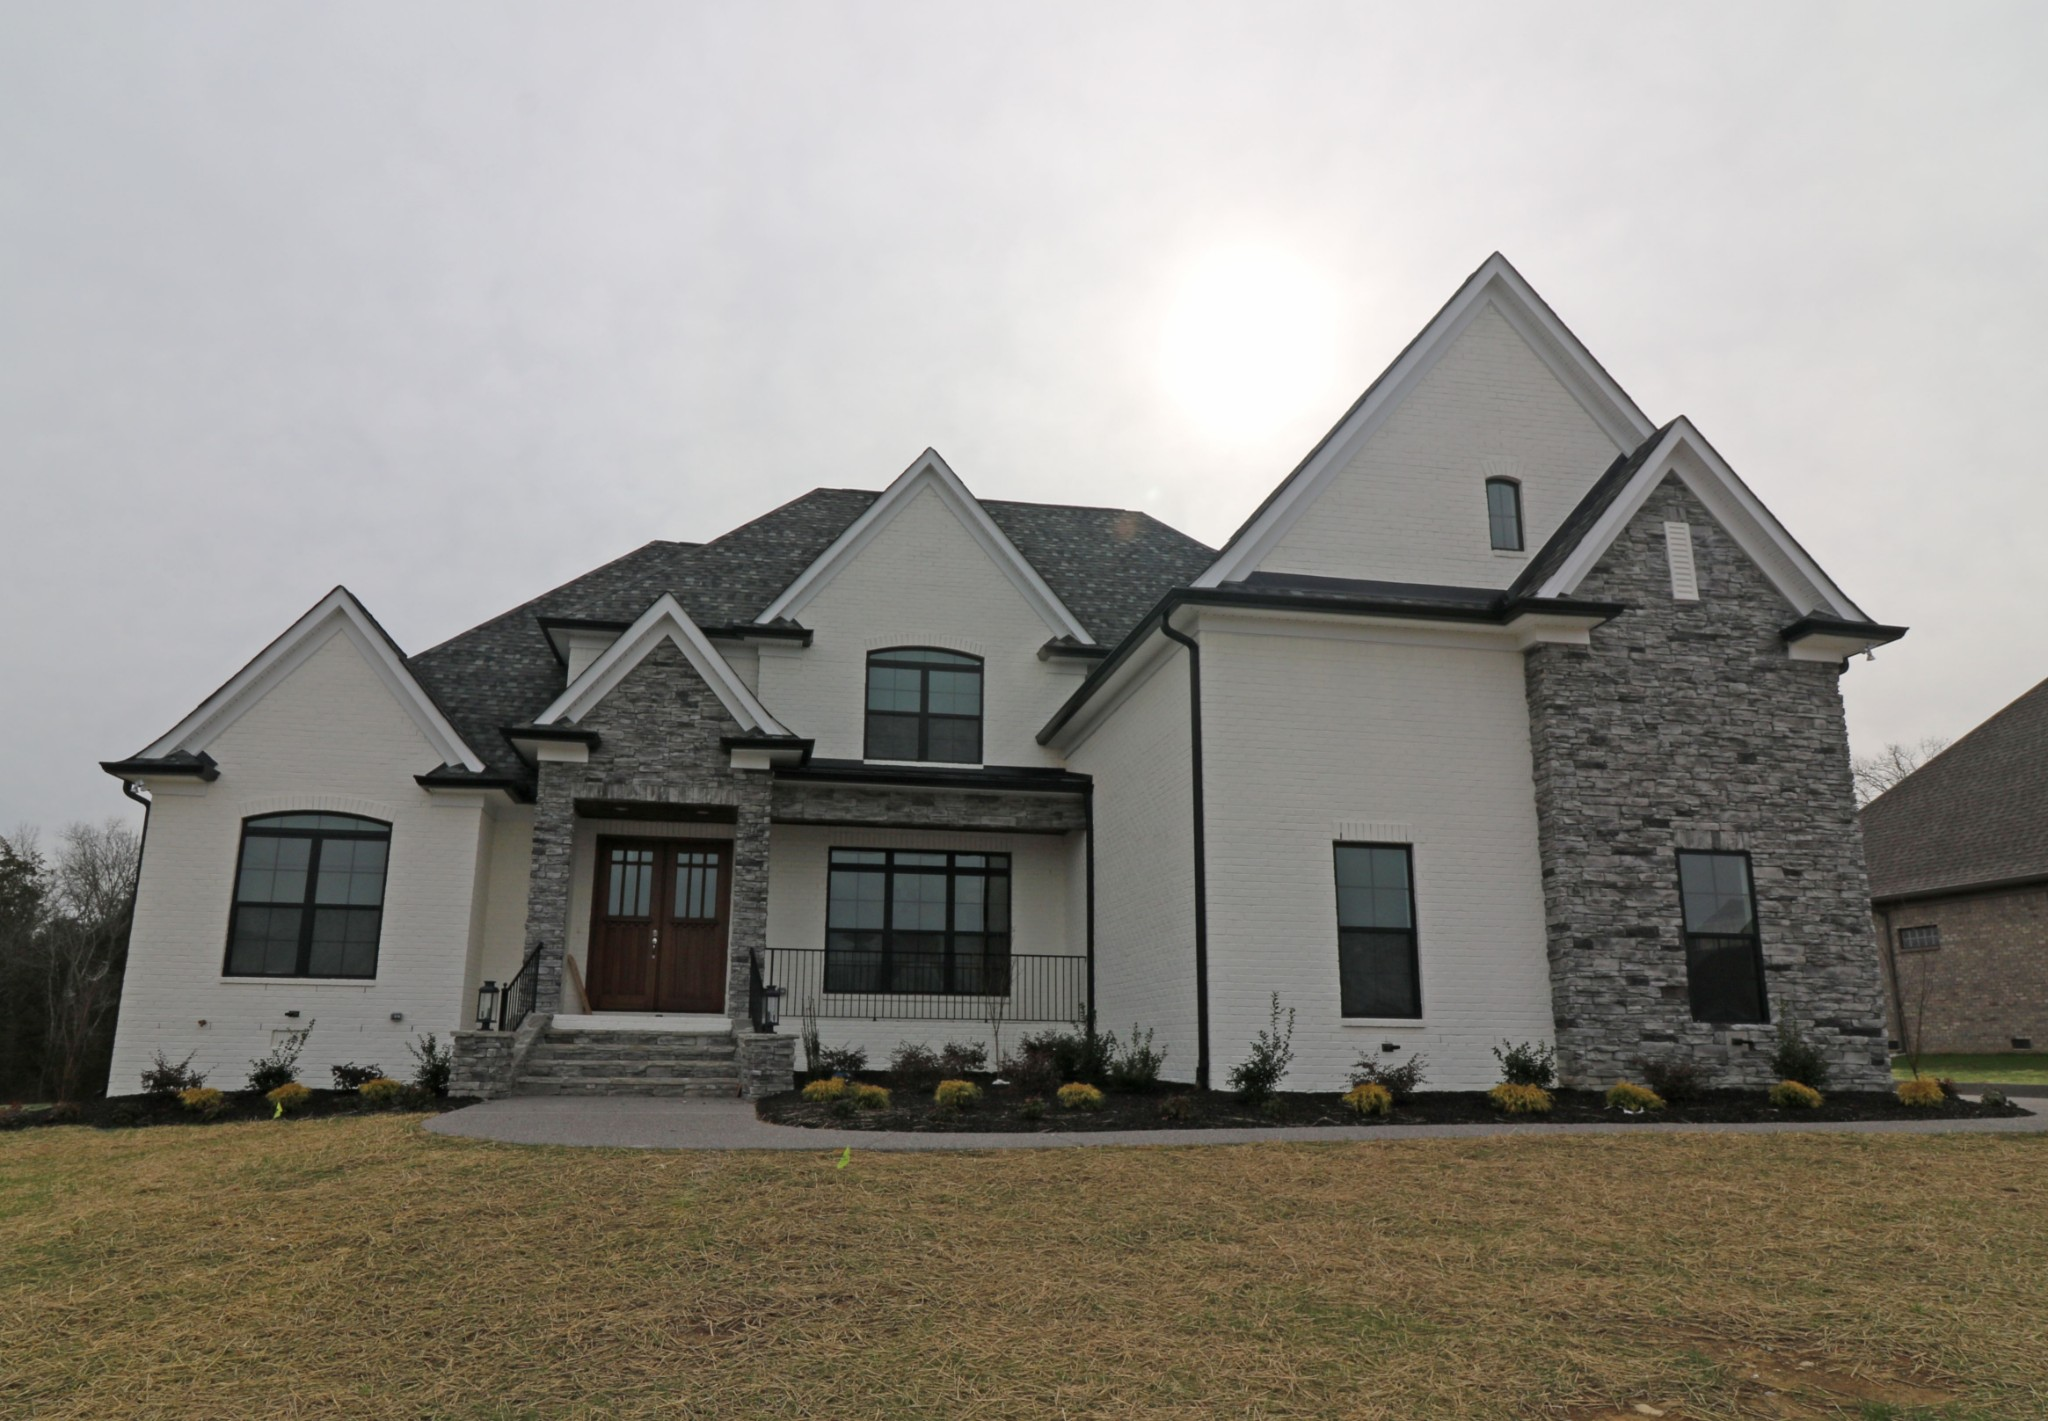 $799,900 - 4Br/5Ba -  for Sale in Wright Farms Sec. 5a, Mount Juliet